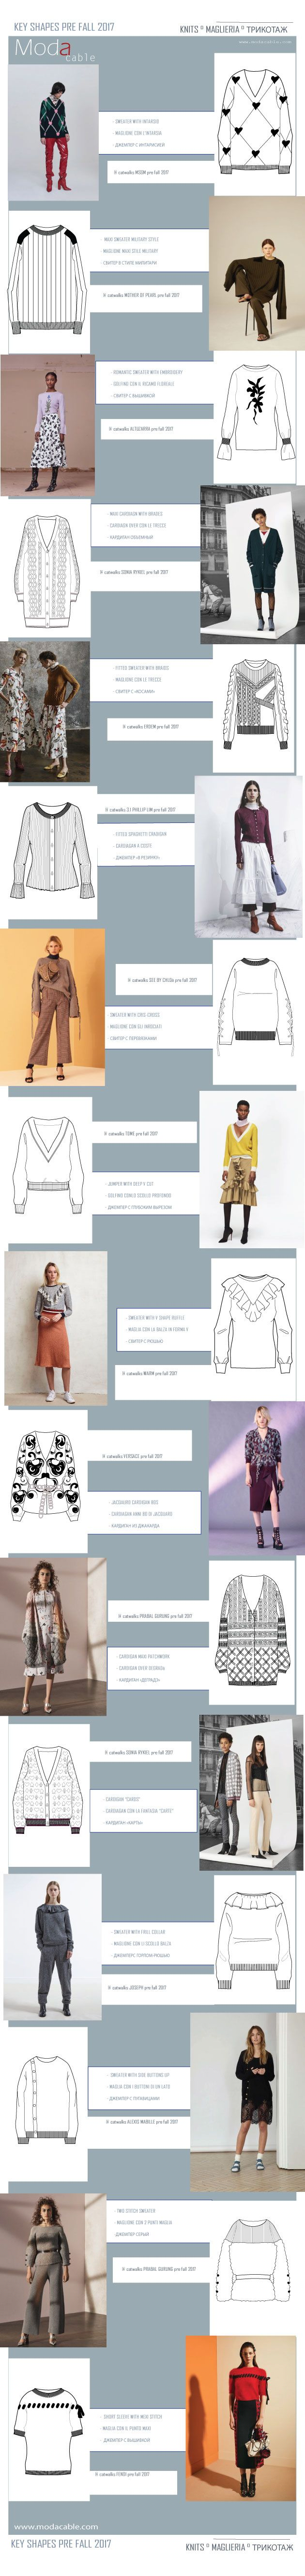 key shapes pre fall 2017 only at modacable.com....subscribe for FREE!!!